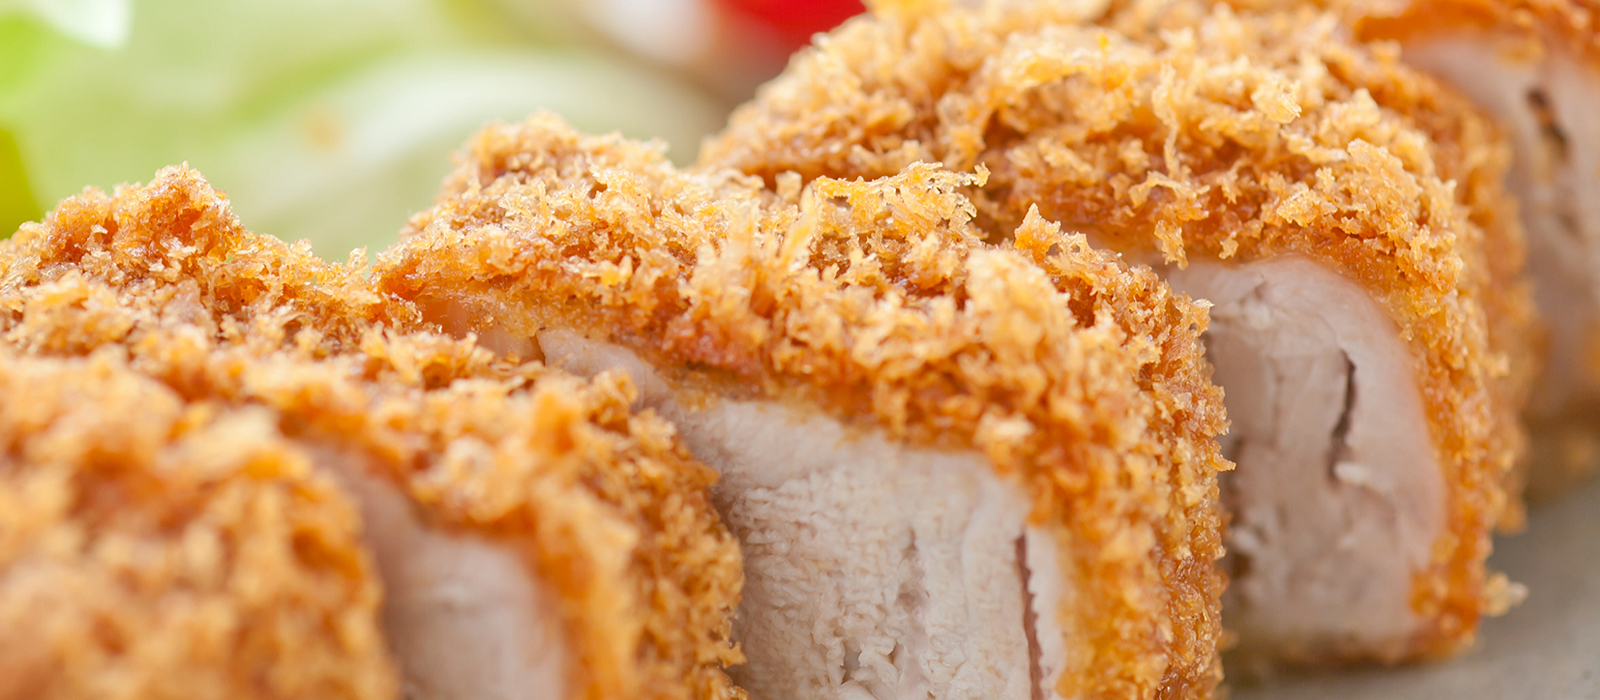 Enjoy our thick tonkatsu, full of meaty flavor that fills your mouth as you chew.